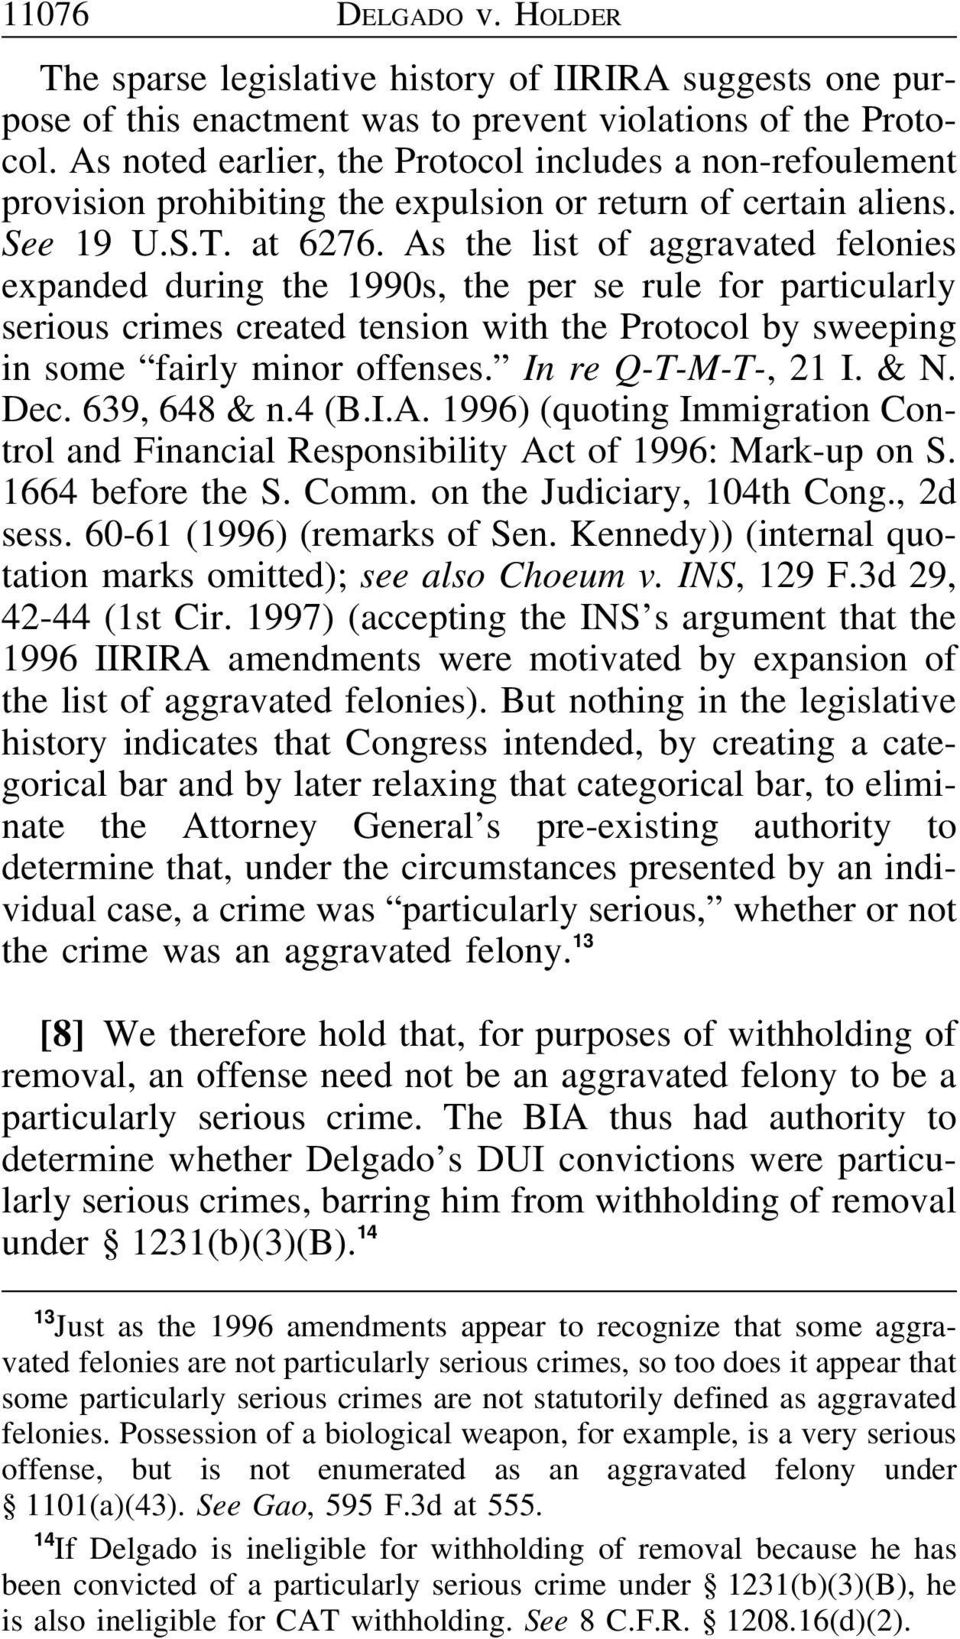 As the list of aggravated felonies expanded during the 1990s, the per se rule for particularly serious crimes created tension with the Protocol by sweeping in some fairly minor offenses.